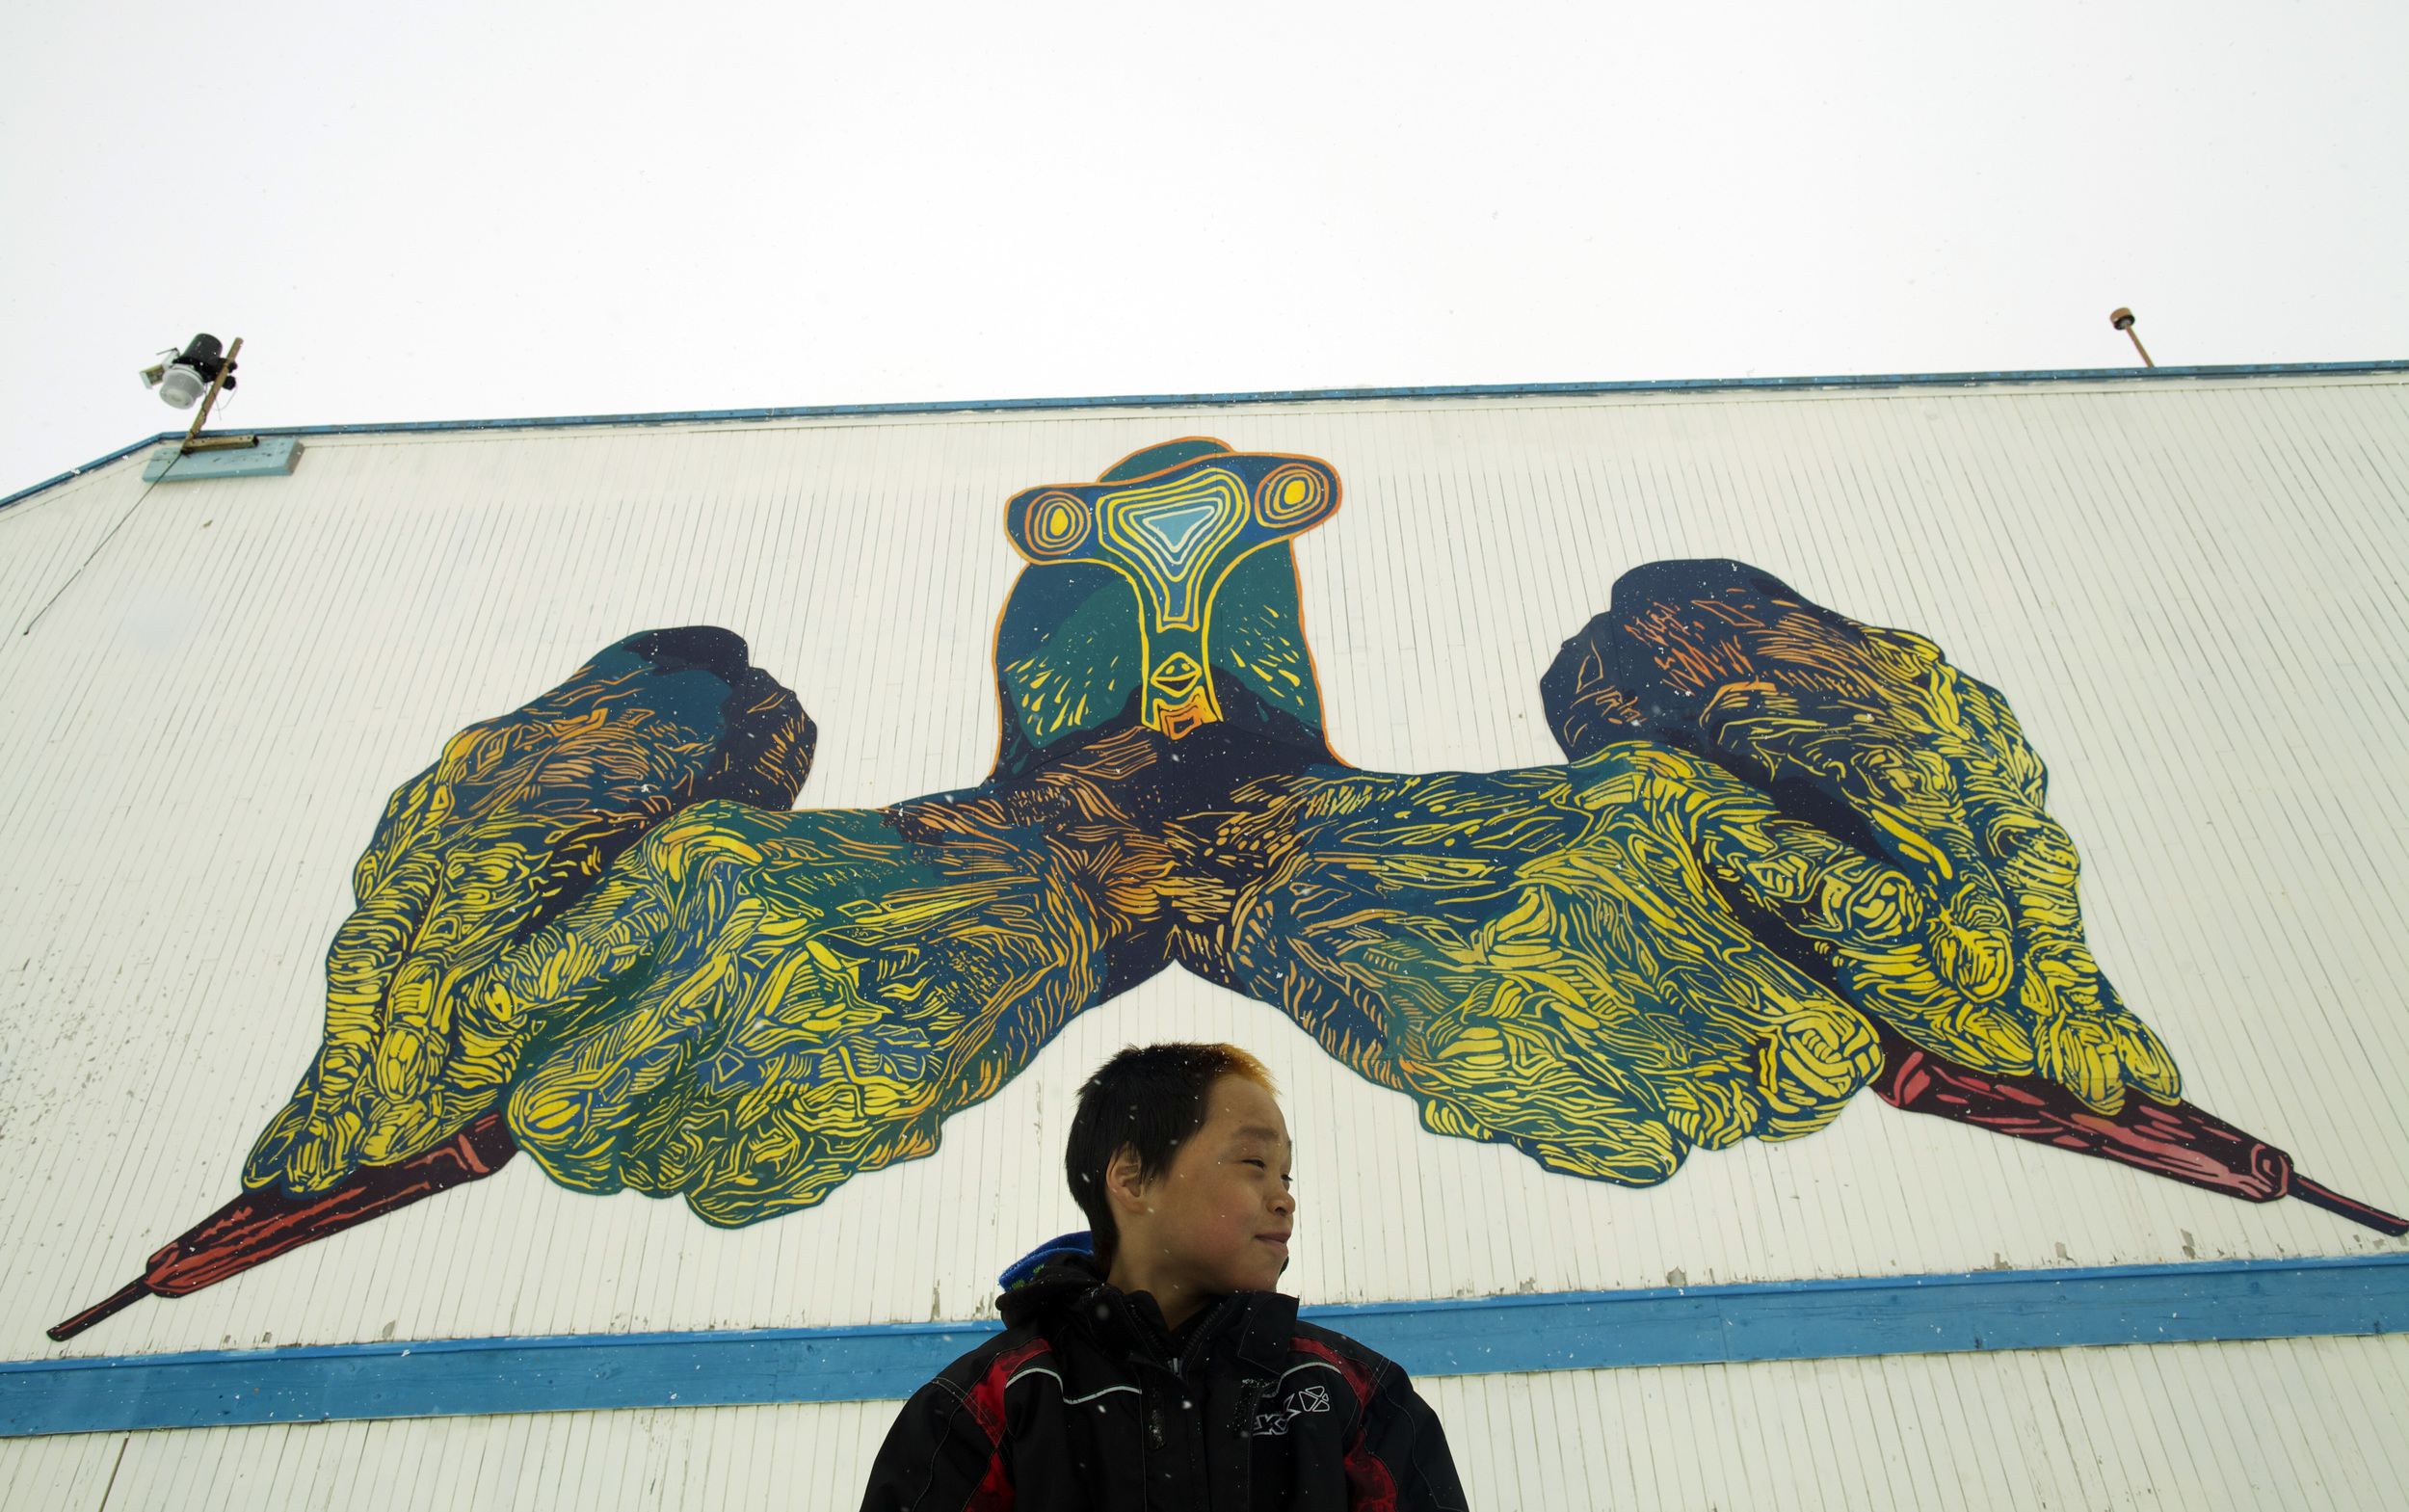 MINE YOUR IMAGINATION, Cape Dorset, Nunavut, Canada,2014-2015   18x36', latex on mounted plywood   We created the hans in the mural by making original linocut prints, and projecting and painting them cut-for-cut: our way of giving a nod to the inspiring printmaking in Cape Dorset, past and present. The bird head was created by Parr Etidloie, 15 years old.    ( http://dorsetfinearts.com/aboutus.php)